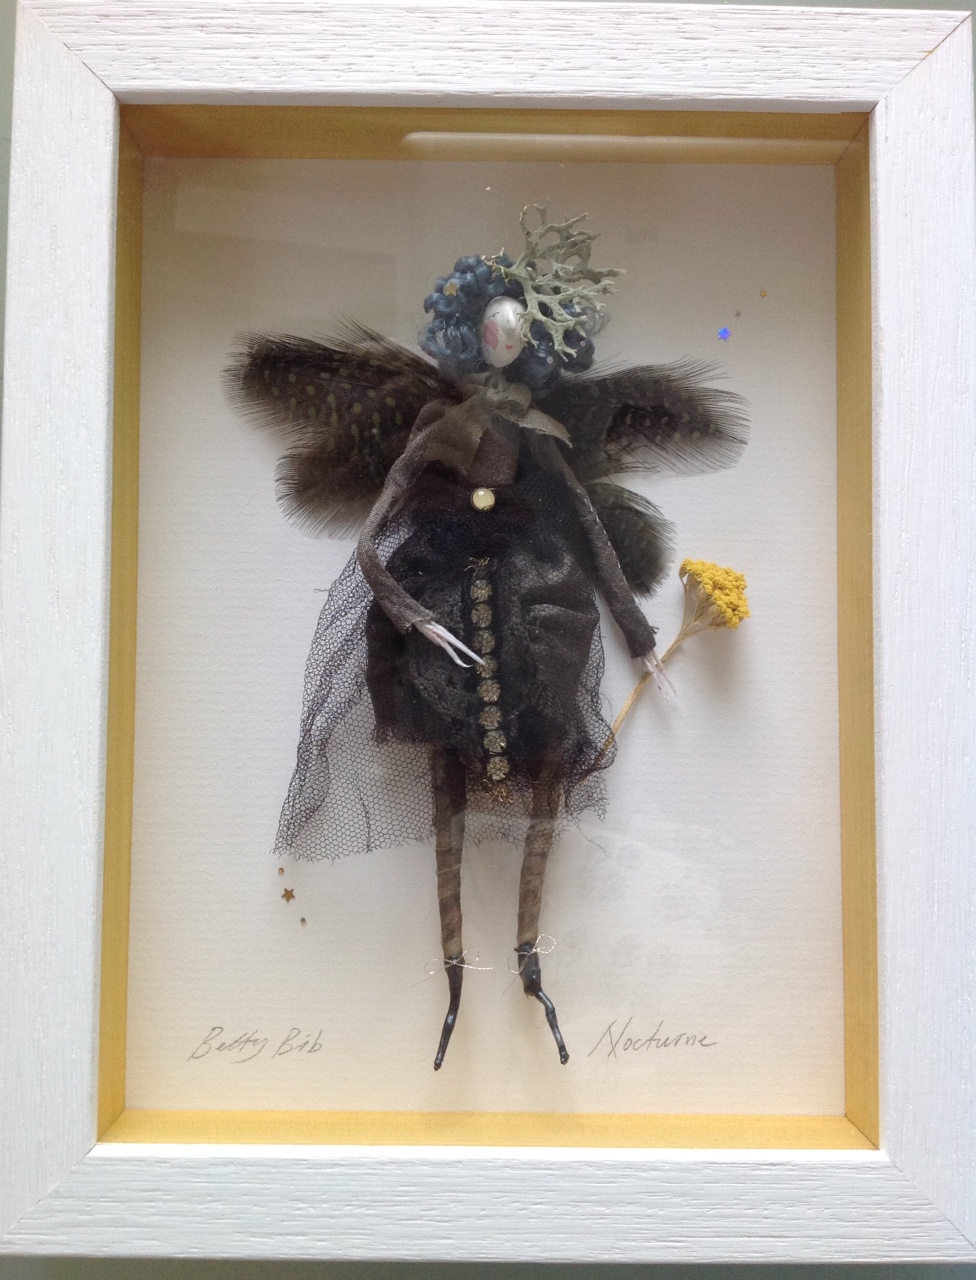 NOCTURNE ; a 23x17.5 cm boxed fairy. She is wearing hand dyed clothes ( alder cones ) trimmed with vintage diamante, has a dried lichen hat and dyed guinea feather wings. She is holding a piece of dried yarrow. £95 plus £3.50 postage. Please e mail me if you would like to see her in more detail.